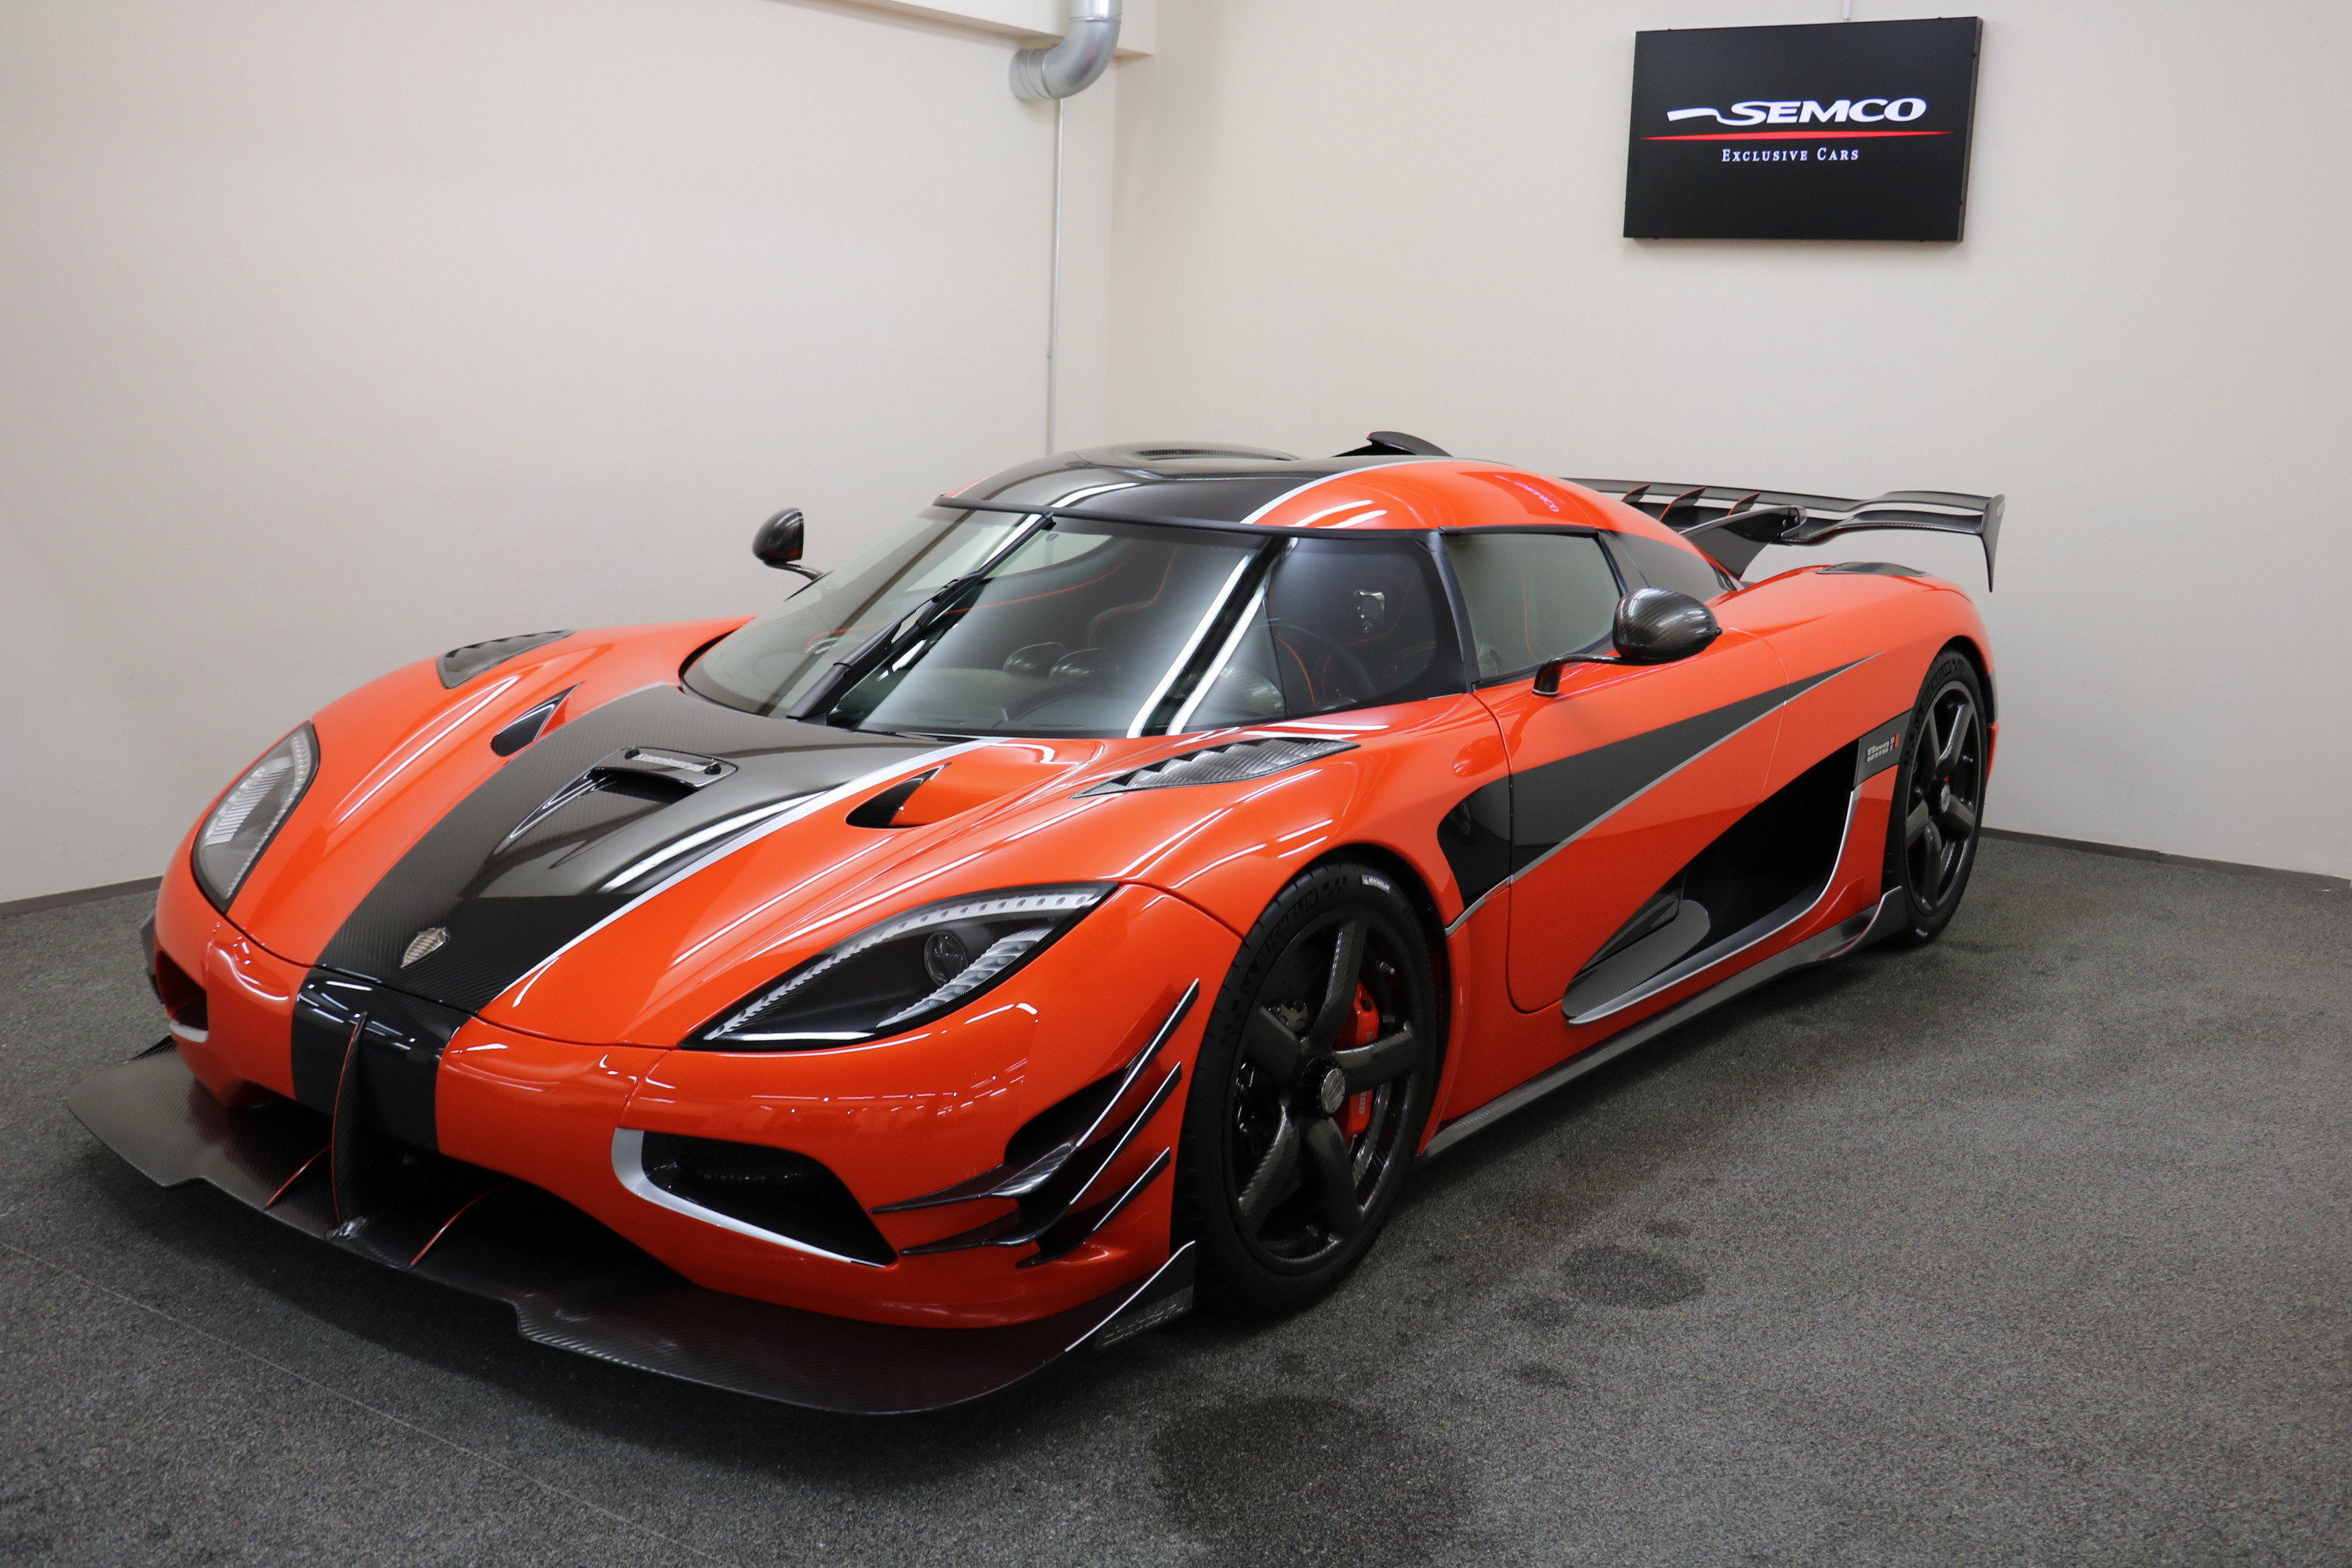 koenigsegg agera final one of 1 for sale in germany gtspirit. Black Bedroom Furniture Sets. Home Design Ideas